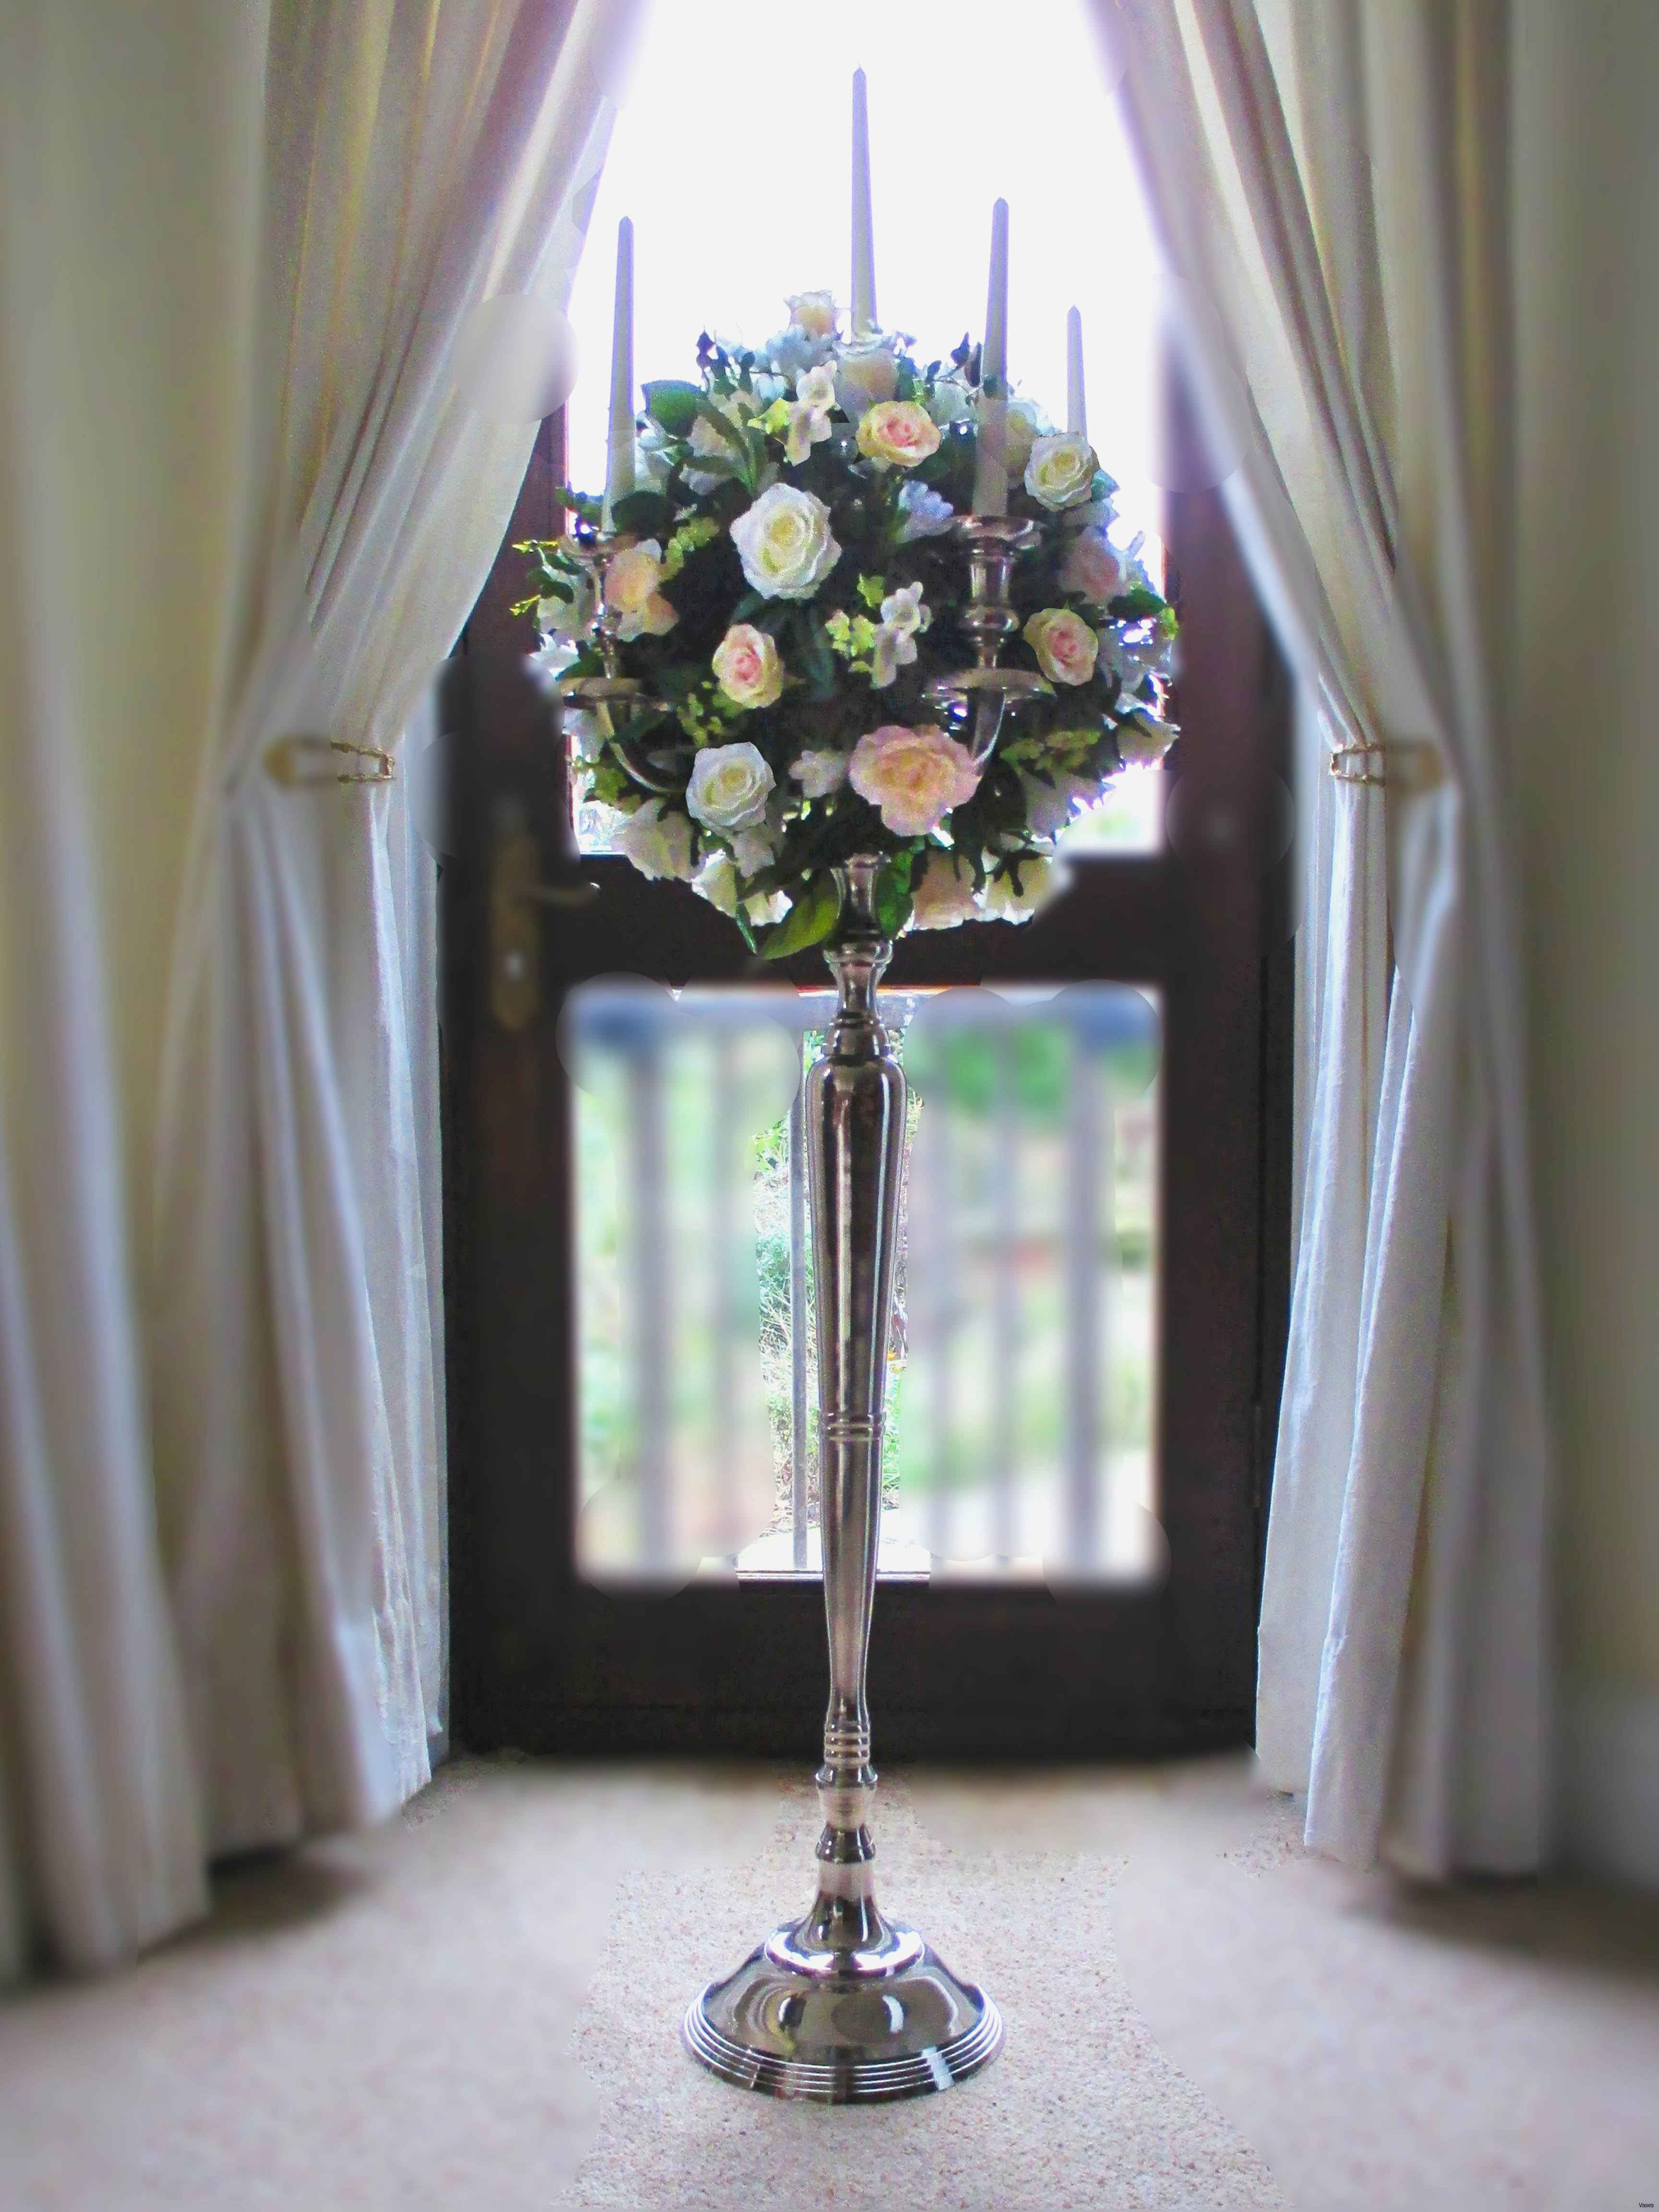 13 Unique Birch Tree Flower Vases 2021 free download birch tree flower vases of fall flowers for wedding beautiful dollar tree wedding decorations with regard to fall flowers for wedding awesome cheap wedding bouquets packages 5397h vases silv